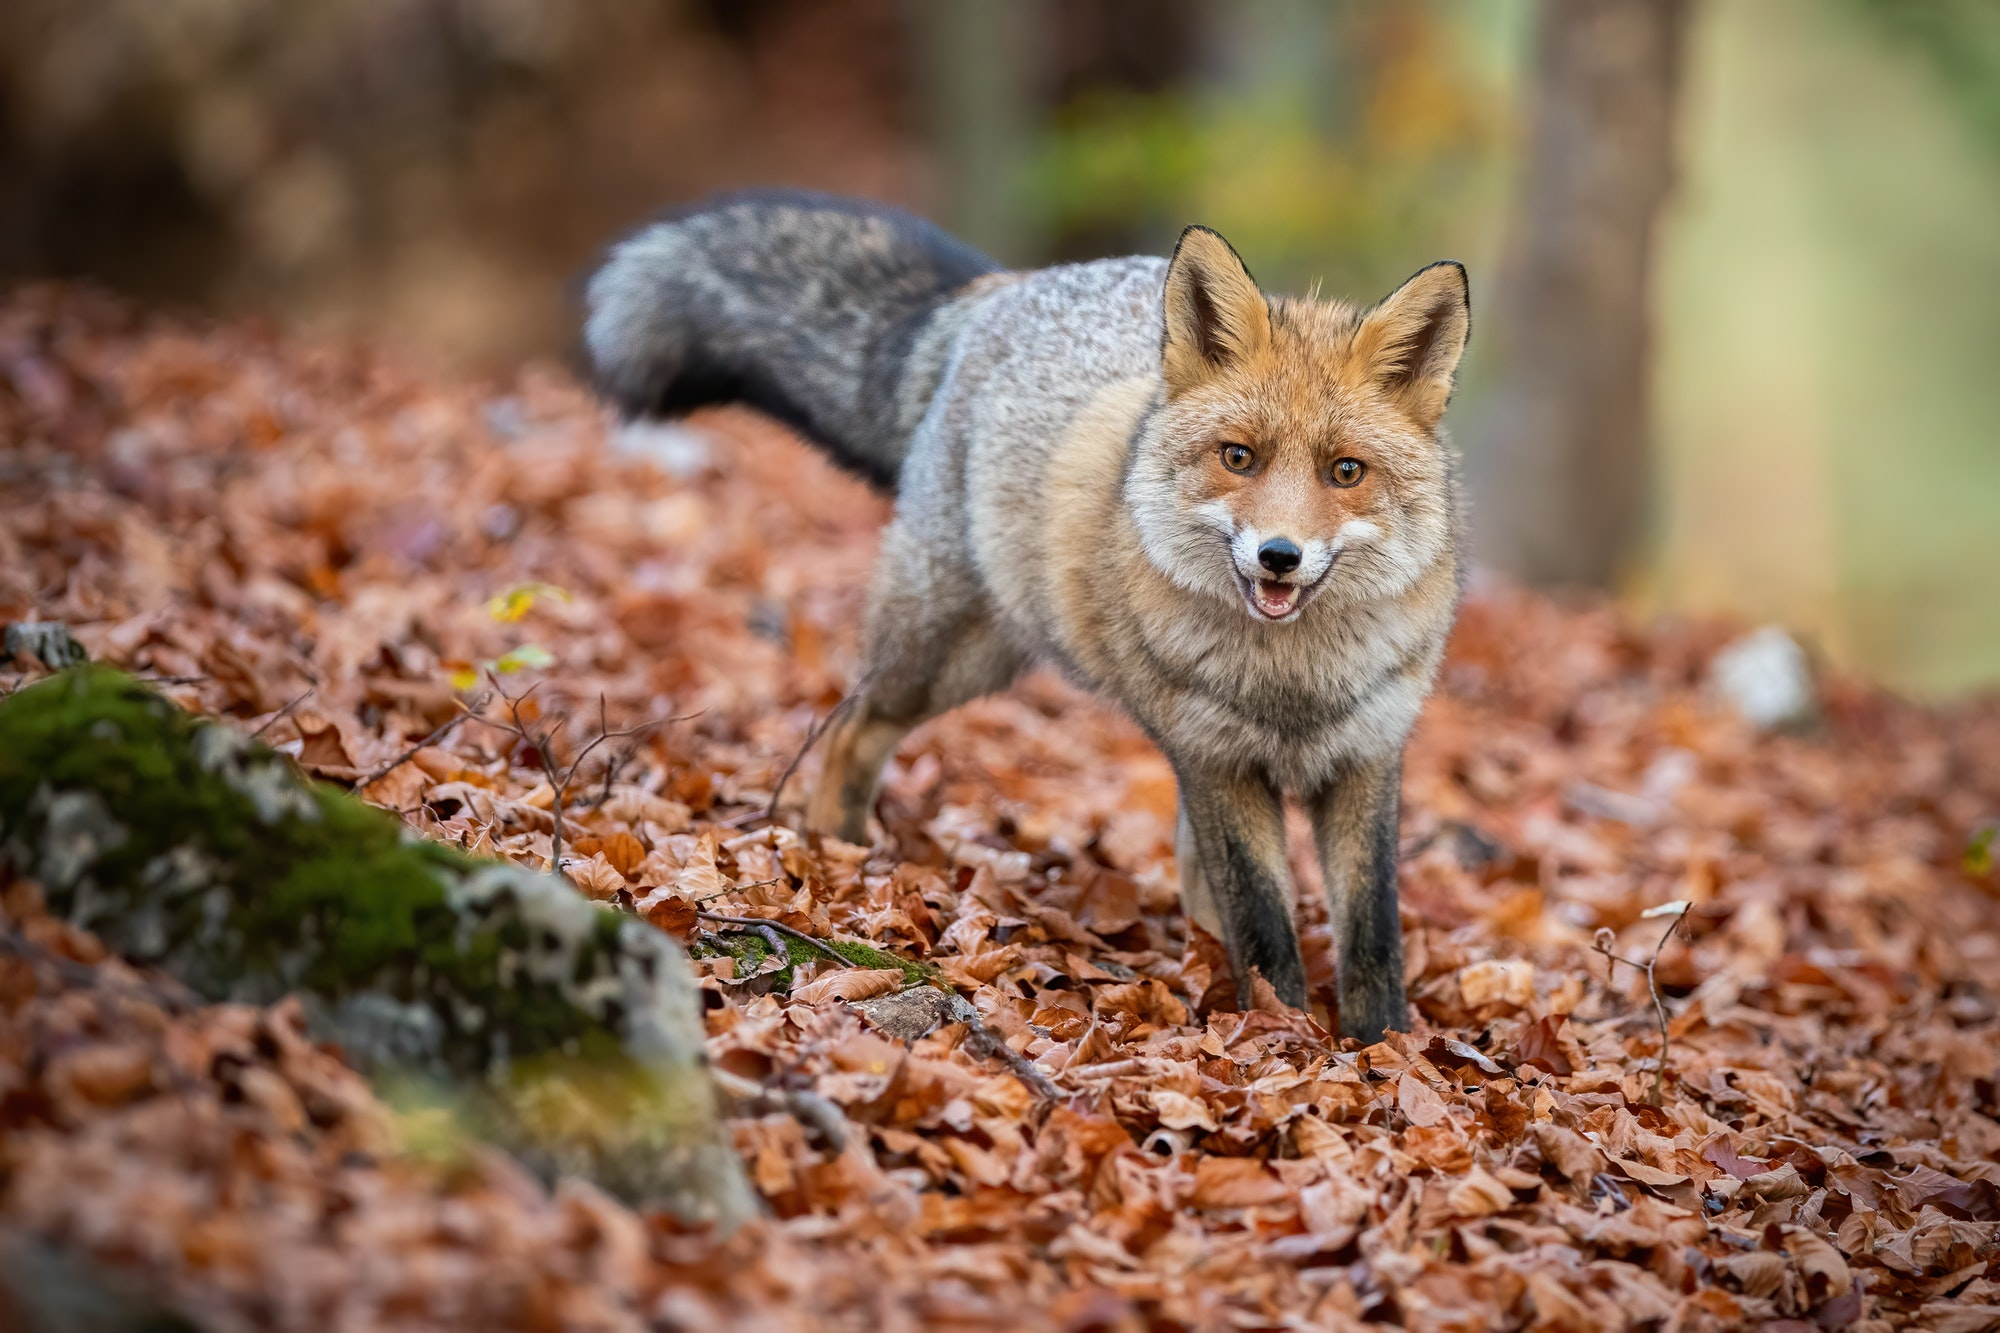 Red fox standing in forest on leaves in autumn nature